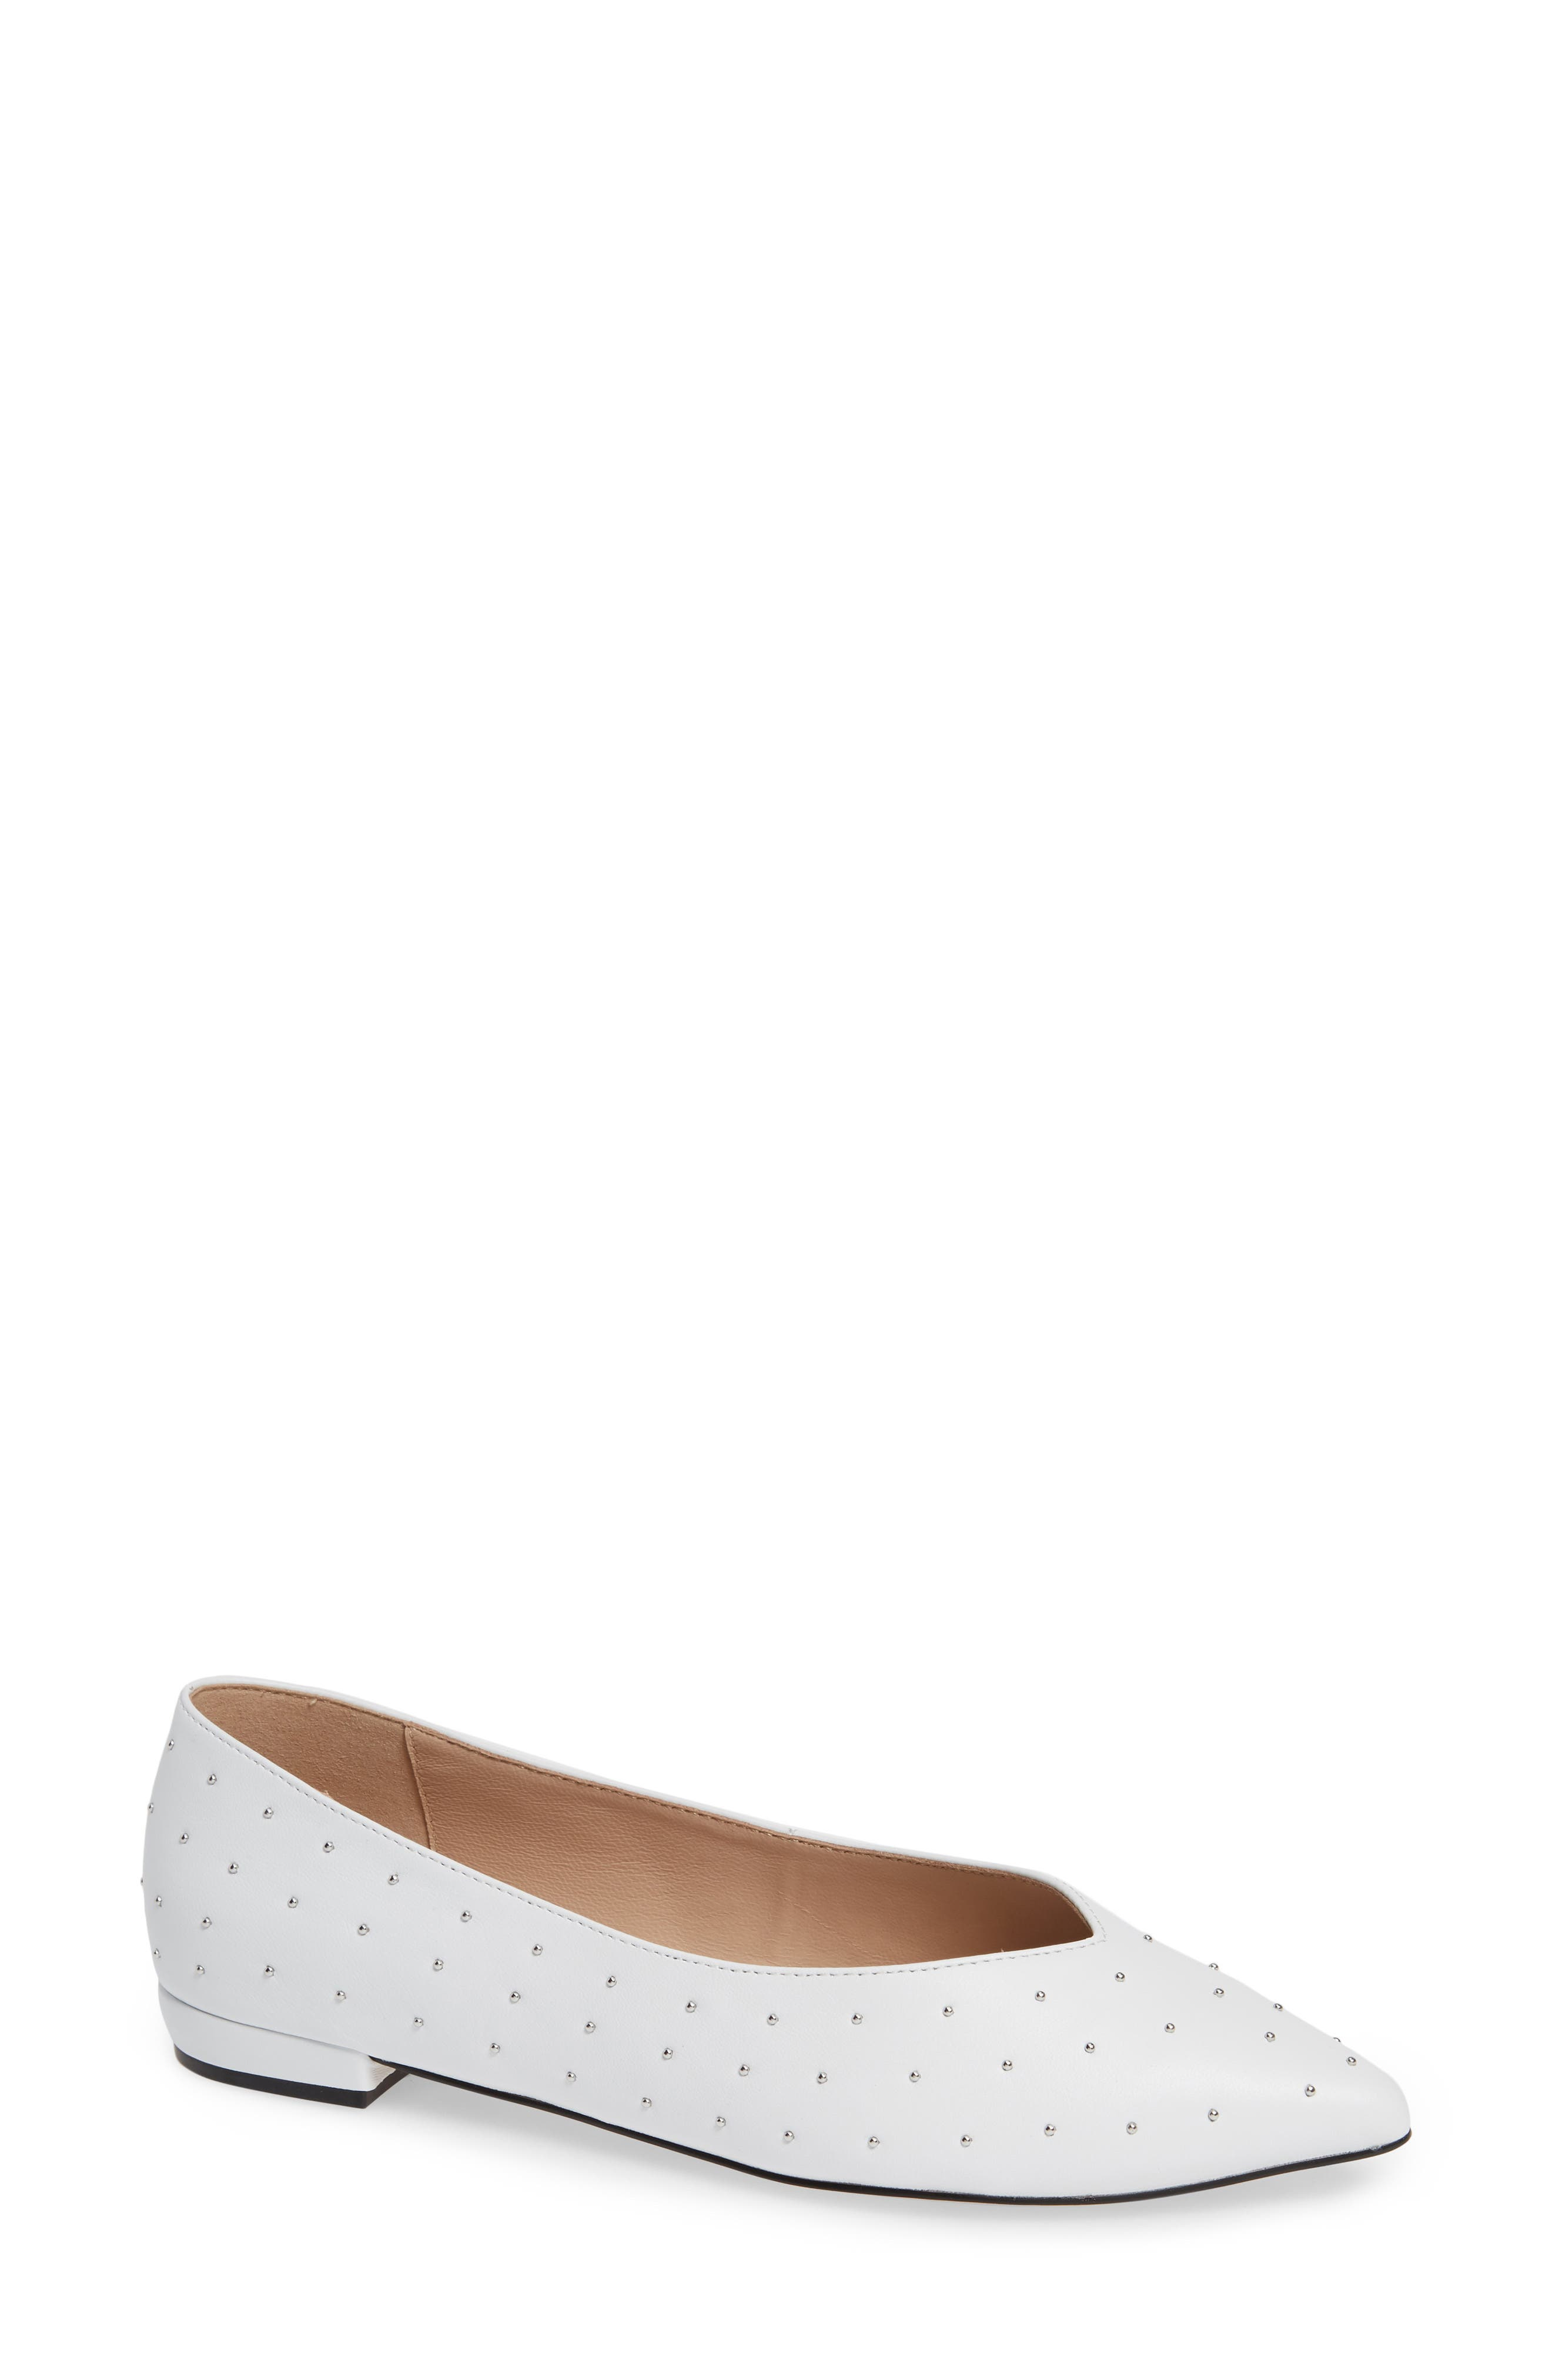 Snbea Studded Flat, Main, color, WHITE LEATHER